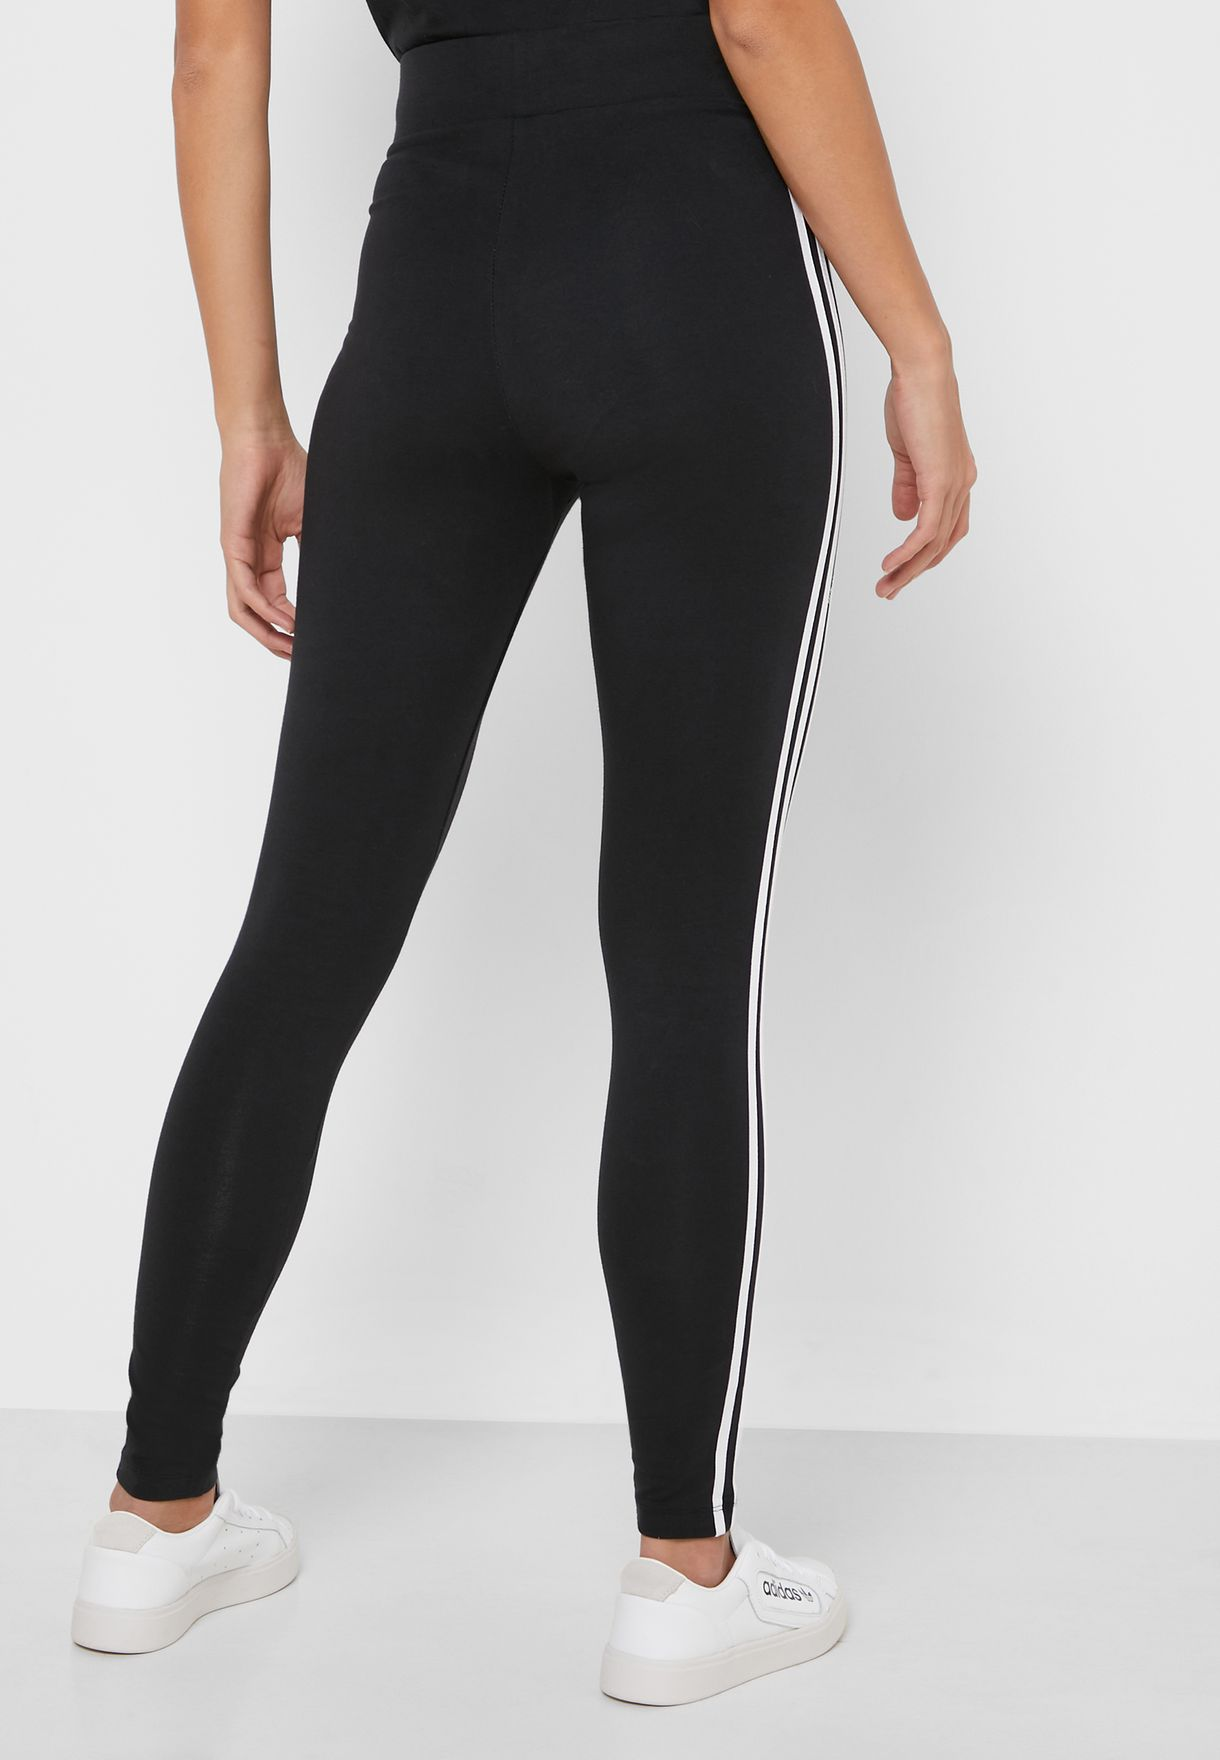 3 Stripes Adicolor Casual Women's Leggings